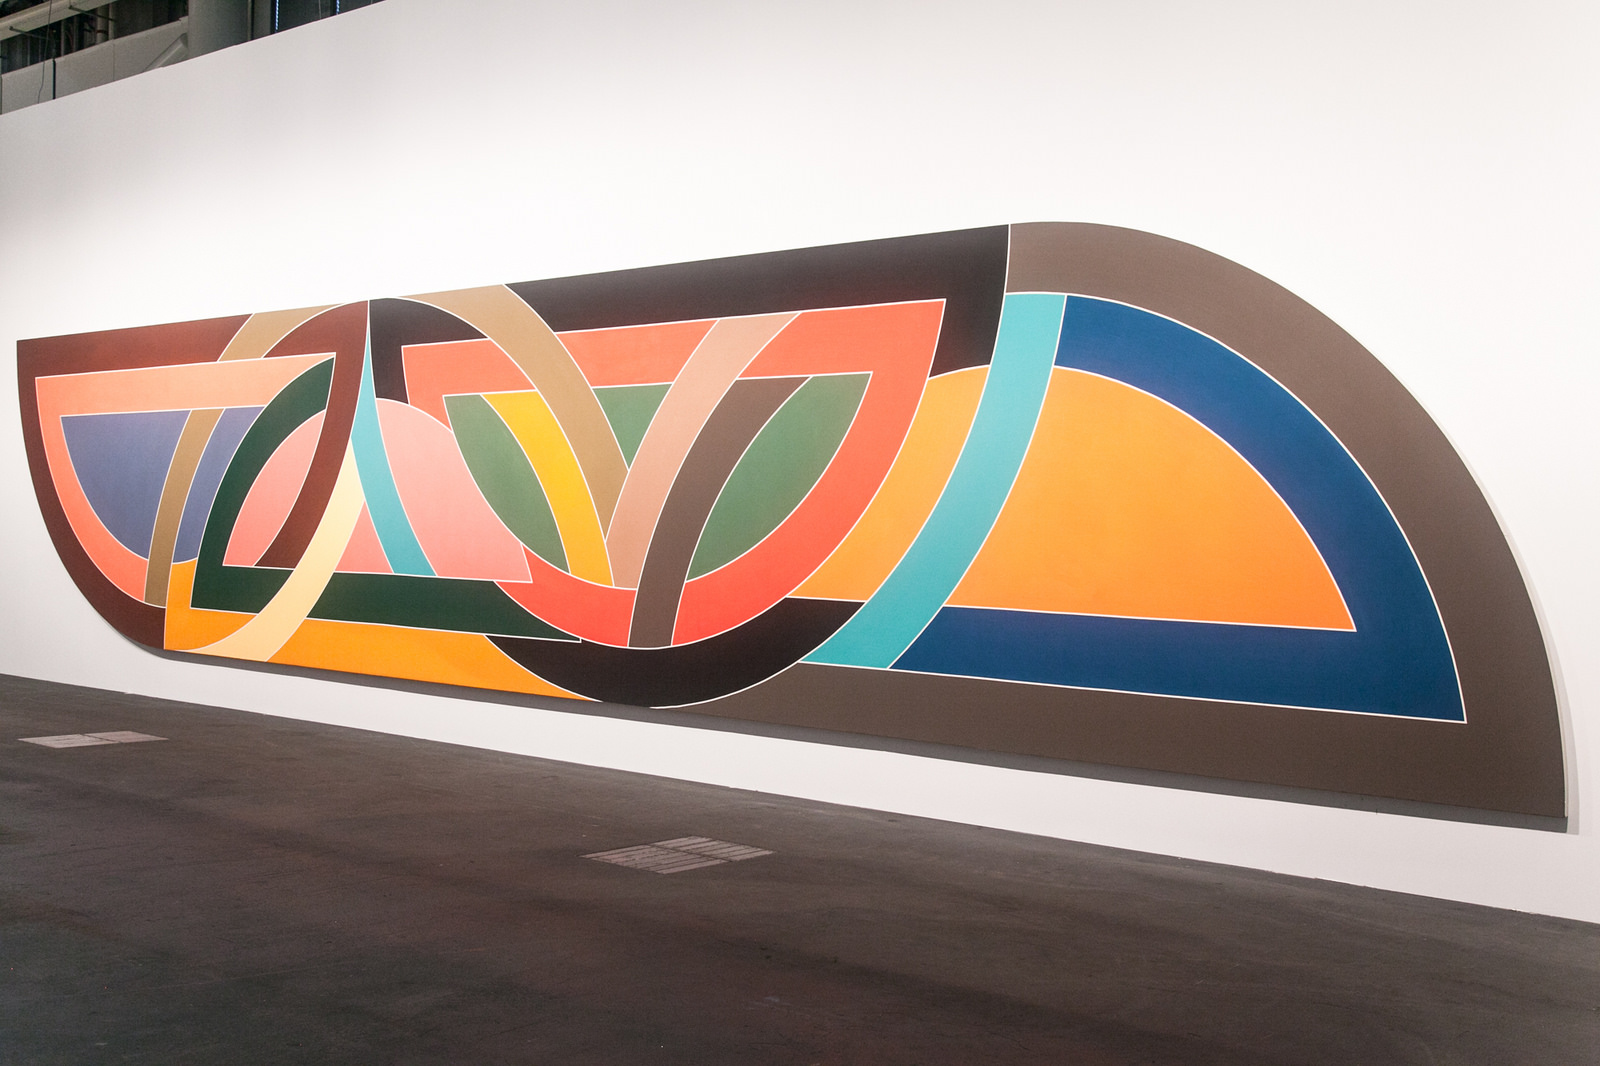 Image: Frank Stella at Unlimited, Art Basel 2016. Courtesy Marianne Boesky Gallery, Dominique Lévy Gallery, Sprüth Magers. Photo: © Timothée Chambovet & Ocula.